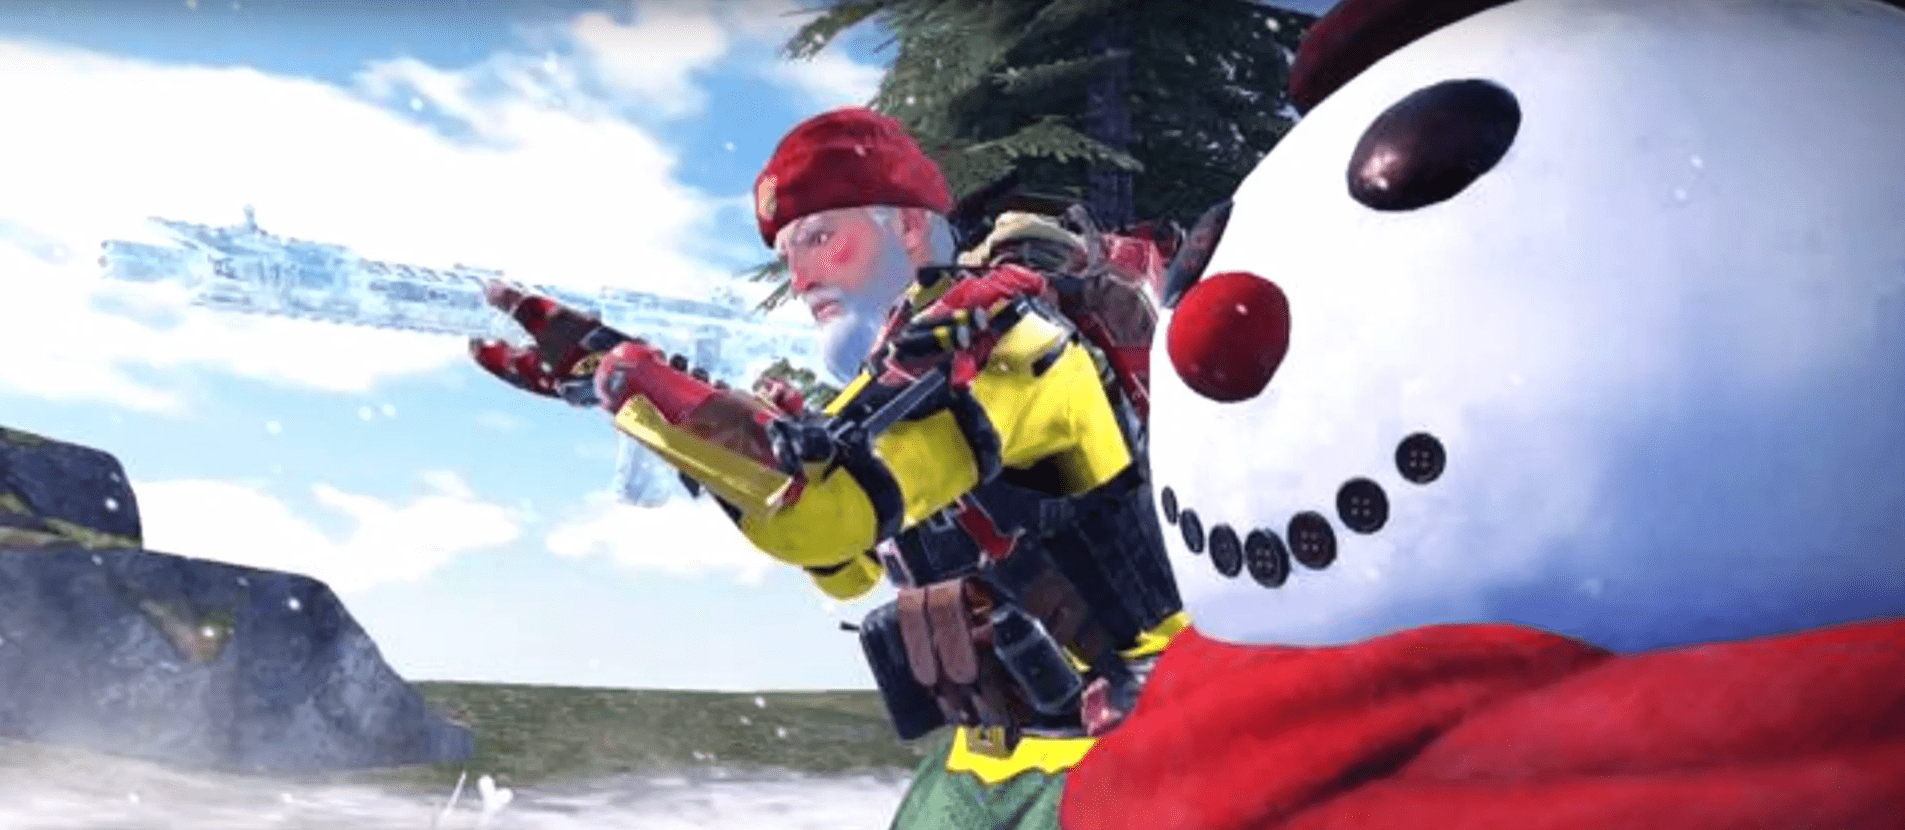 Call Of Duty: Mobile Gamers Can Enjoy A Bunch Of Holiday Events And LTMs During The Next Couple Weeks, Including Zombies Party At The Circus